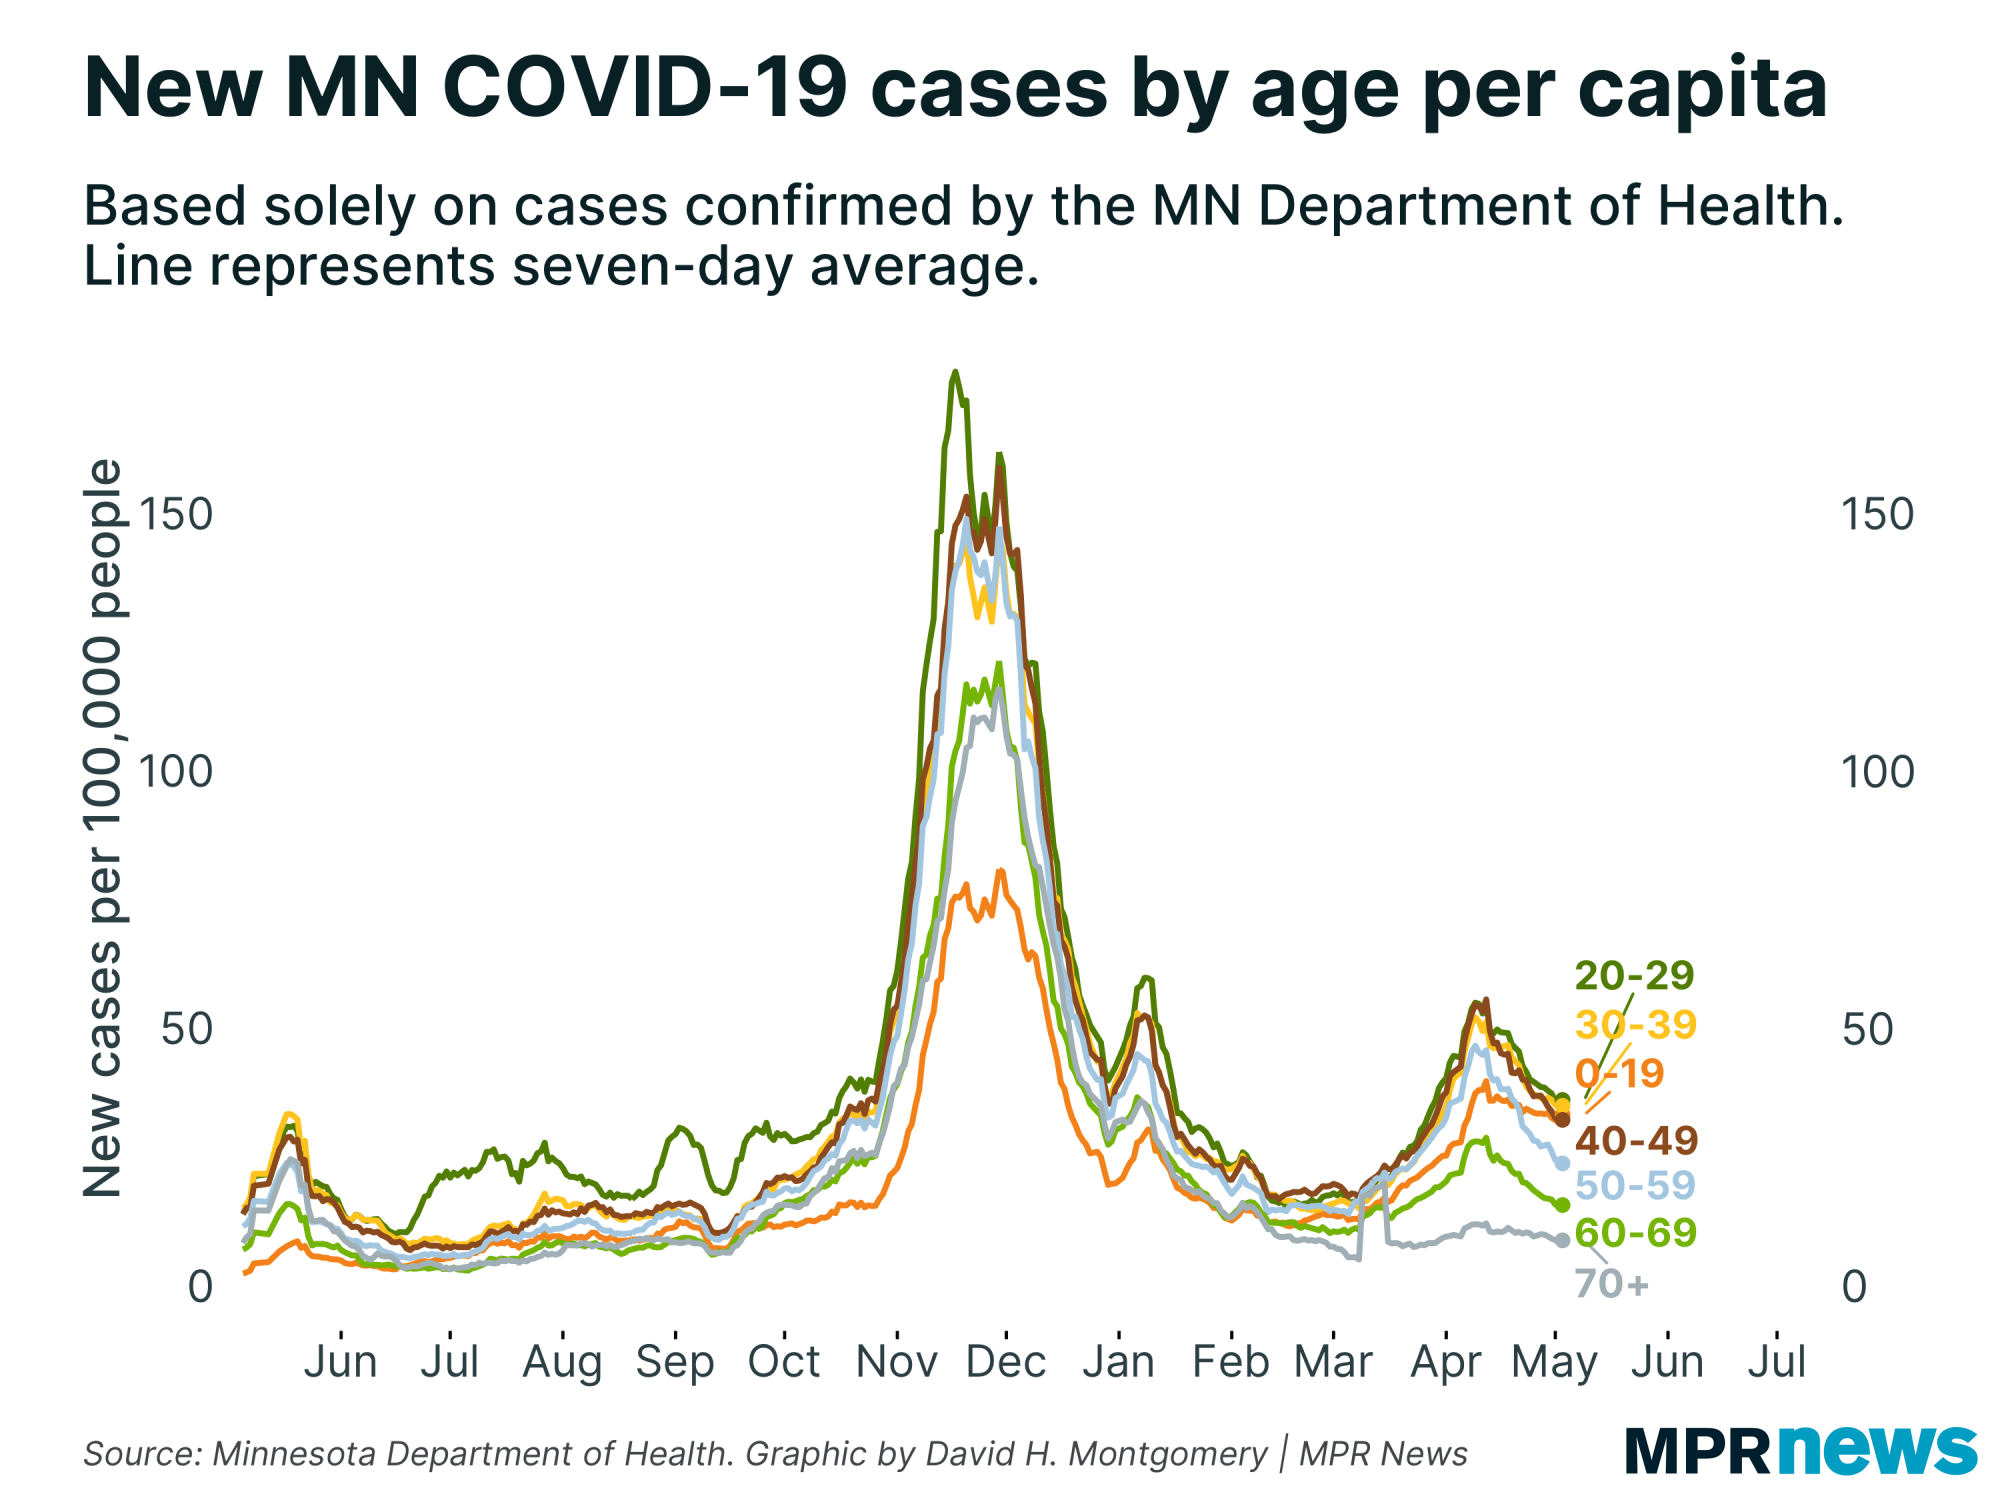 New Minnesota COVID-19 cases by age adjusted for population